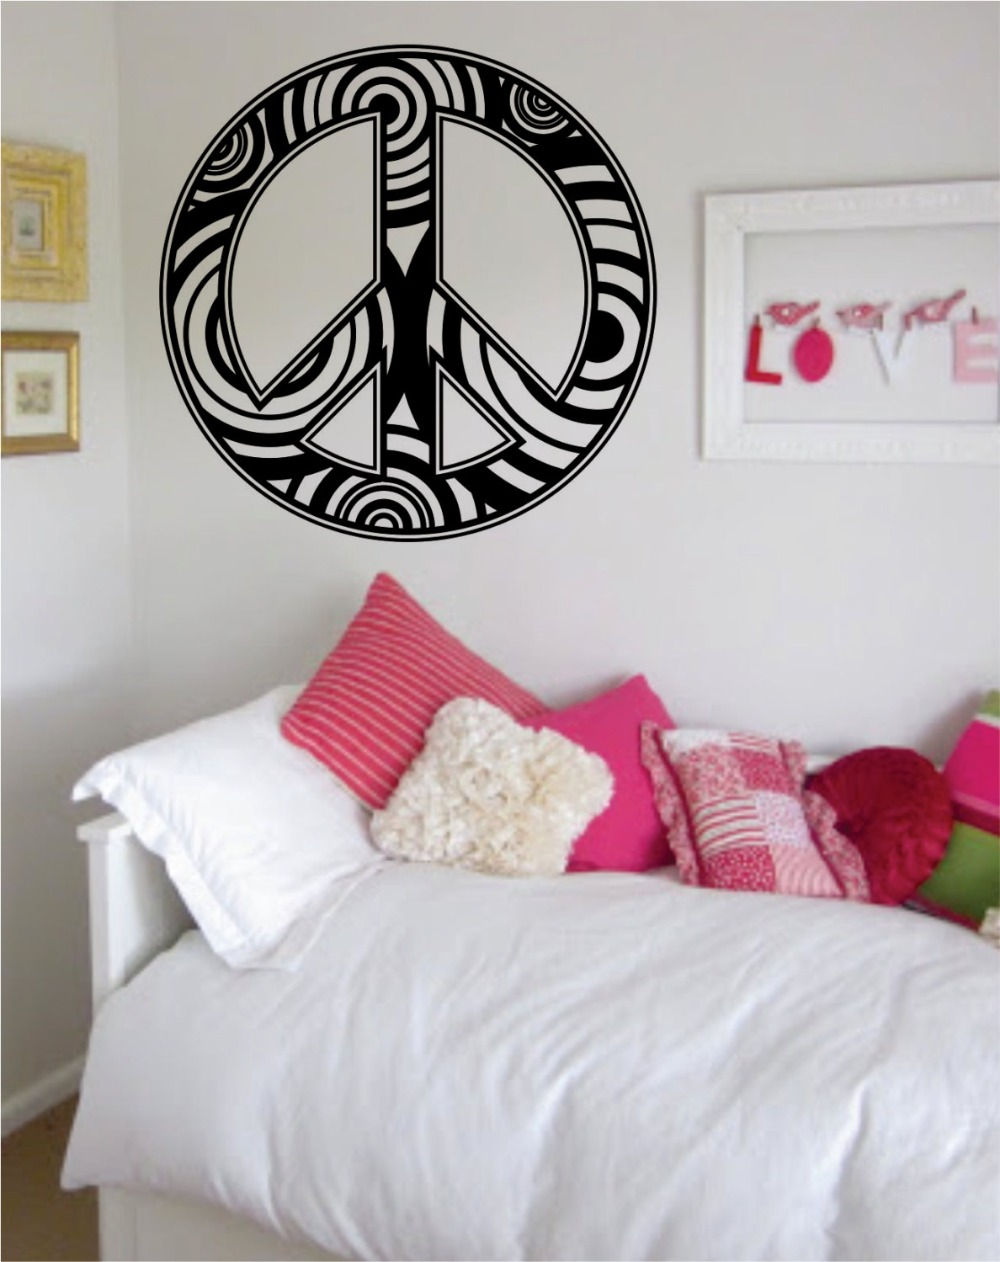 Peace Sign Bedroom Decor Compare Prices On Peace Symbol Art Online Shopping Buy Low Price